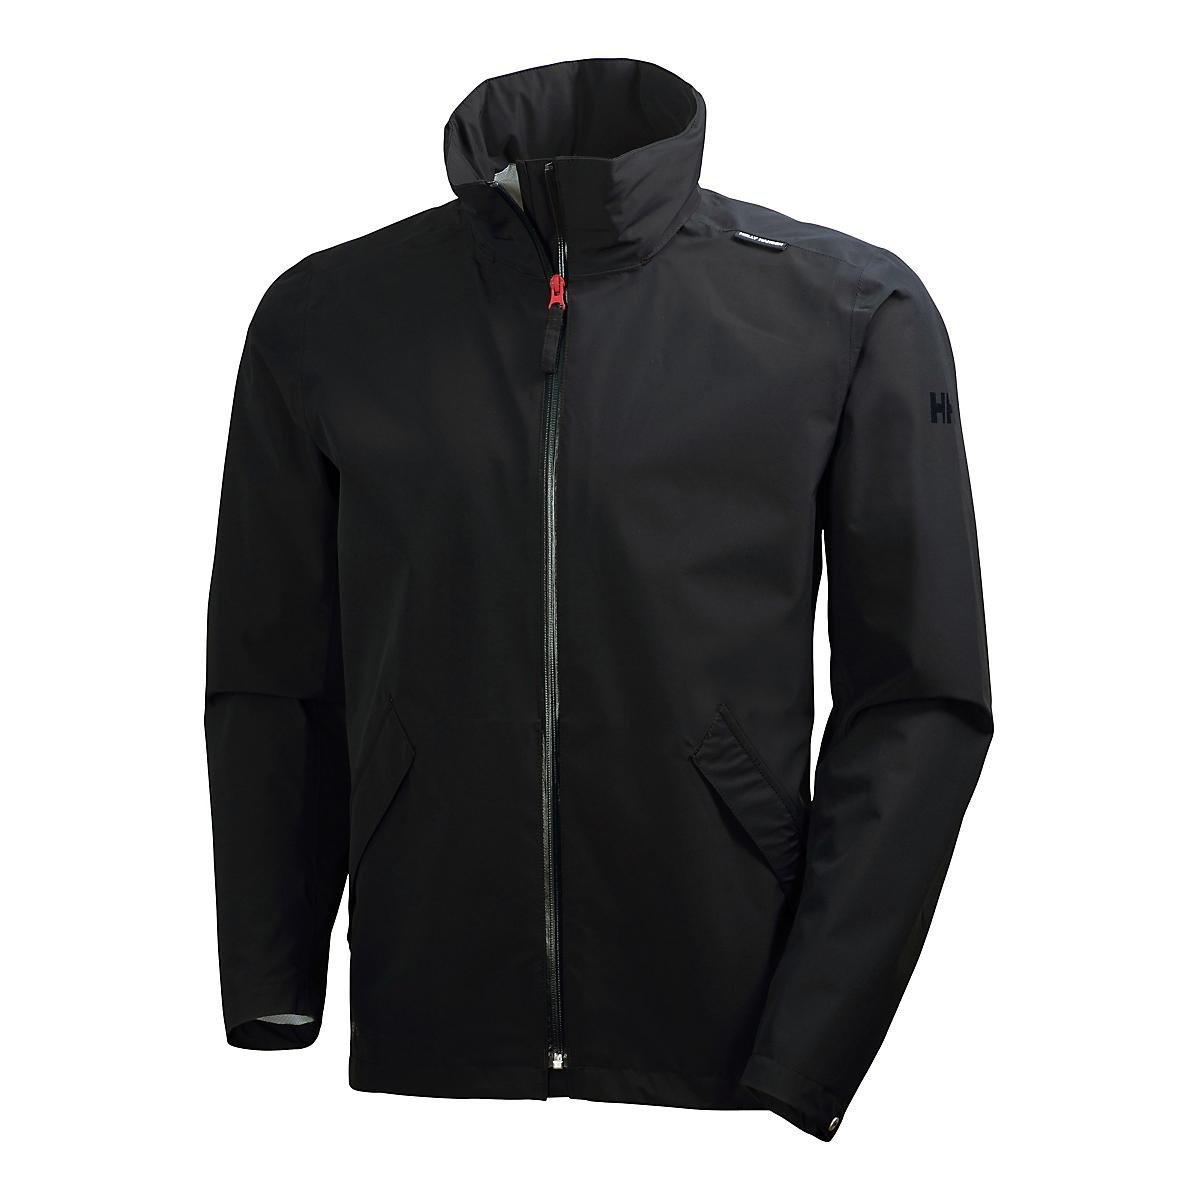 Men's Helly Hansen�Royan Jacket